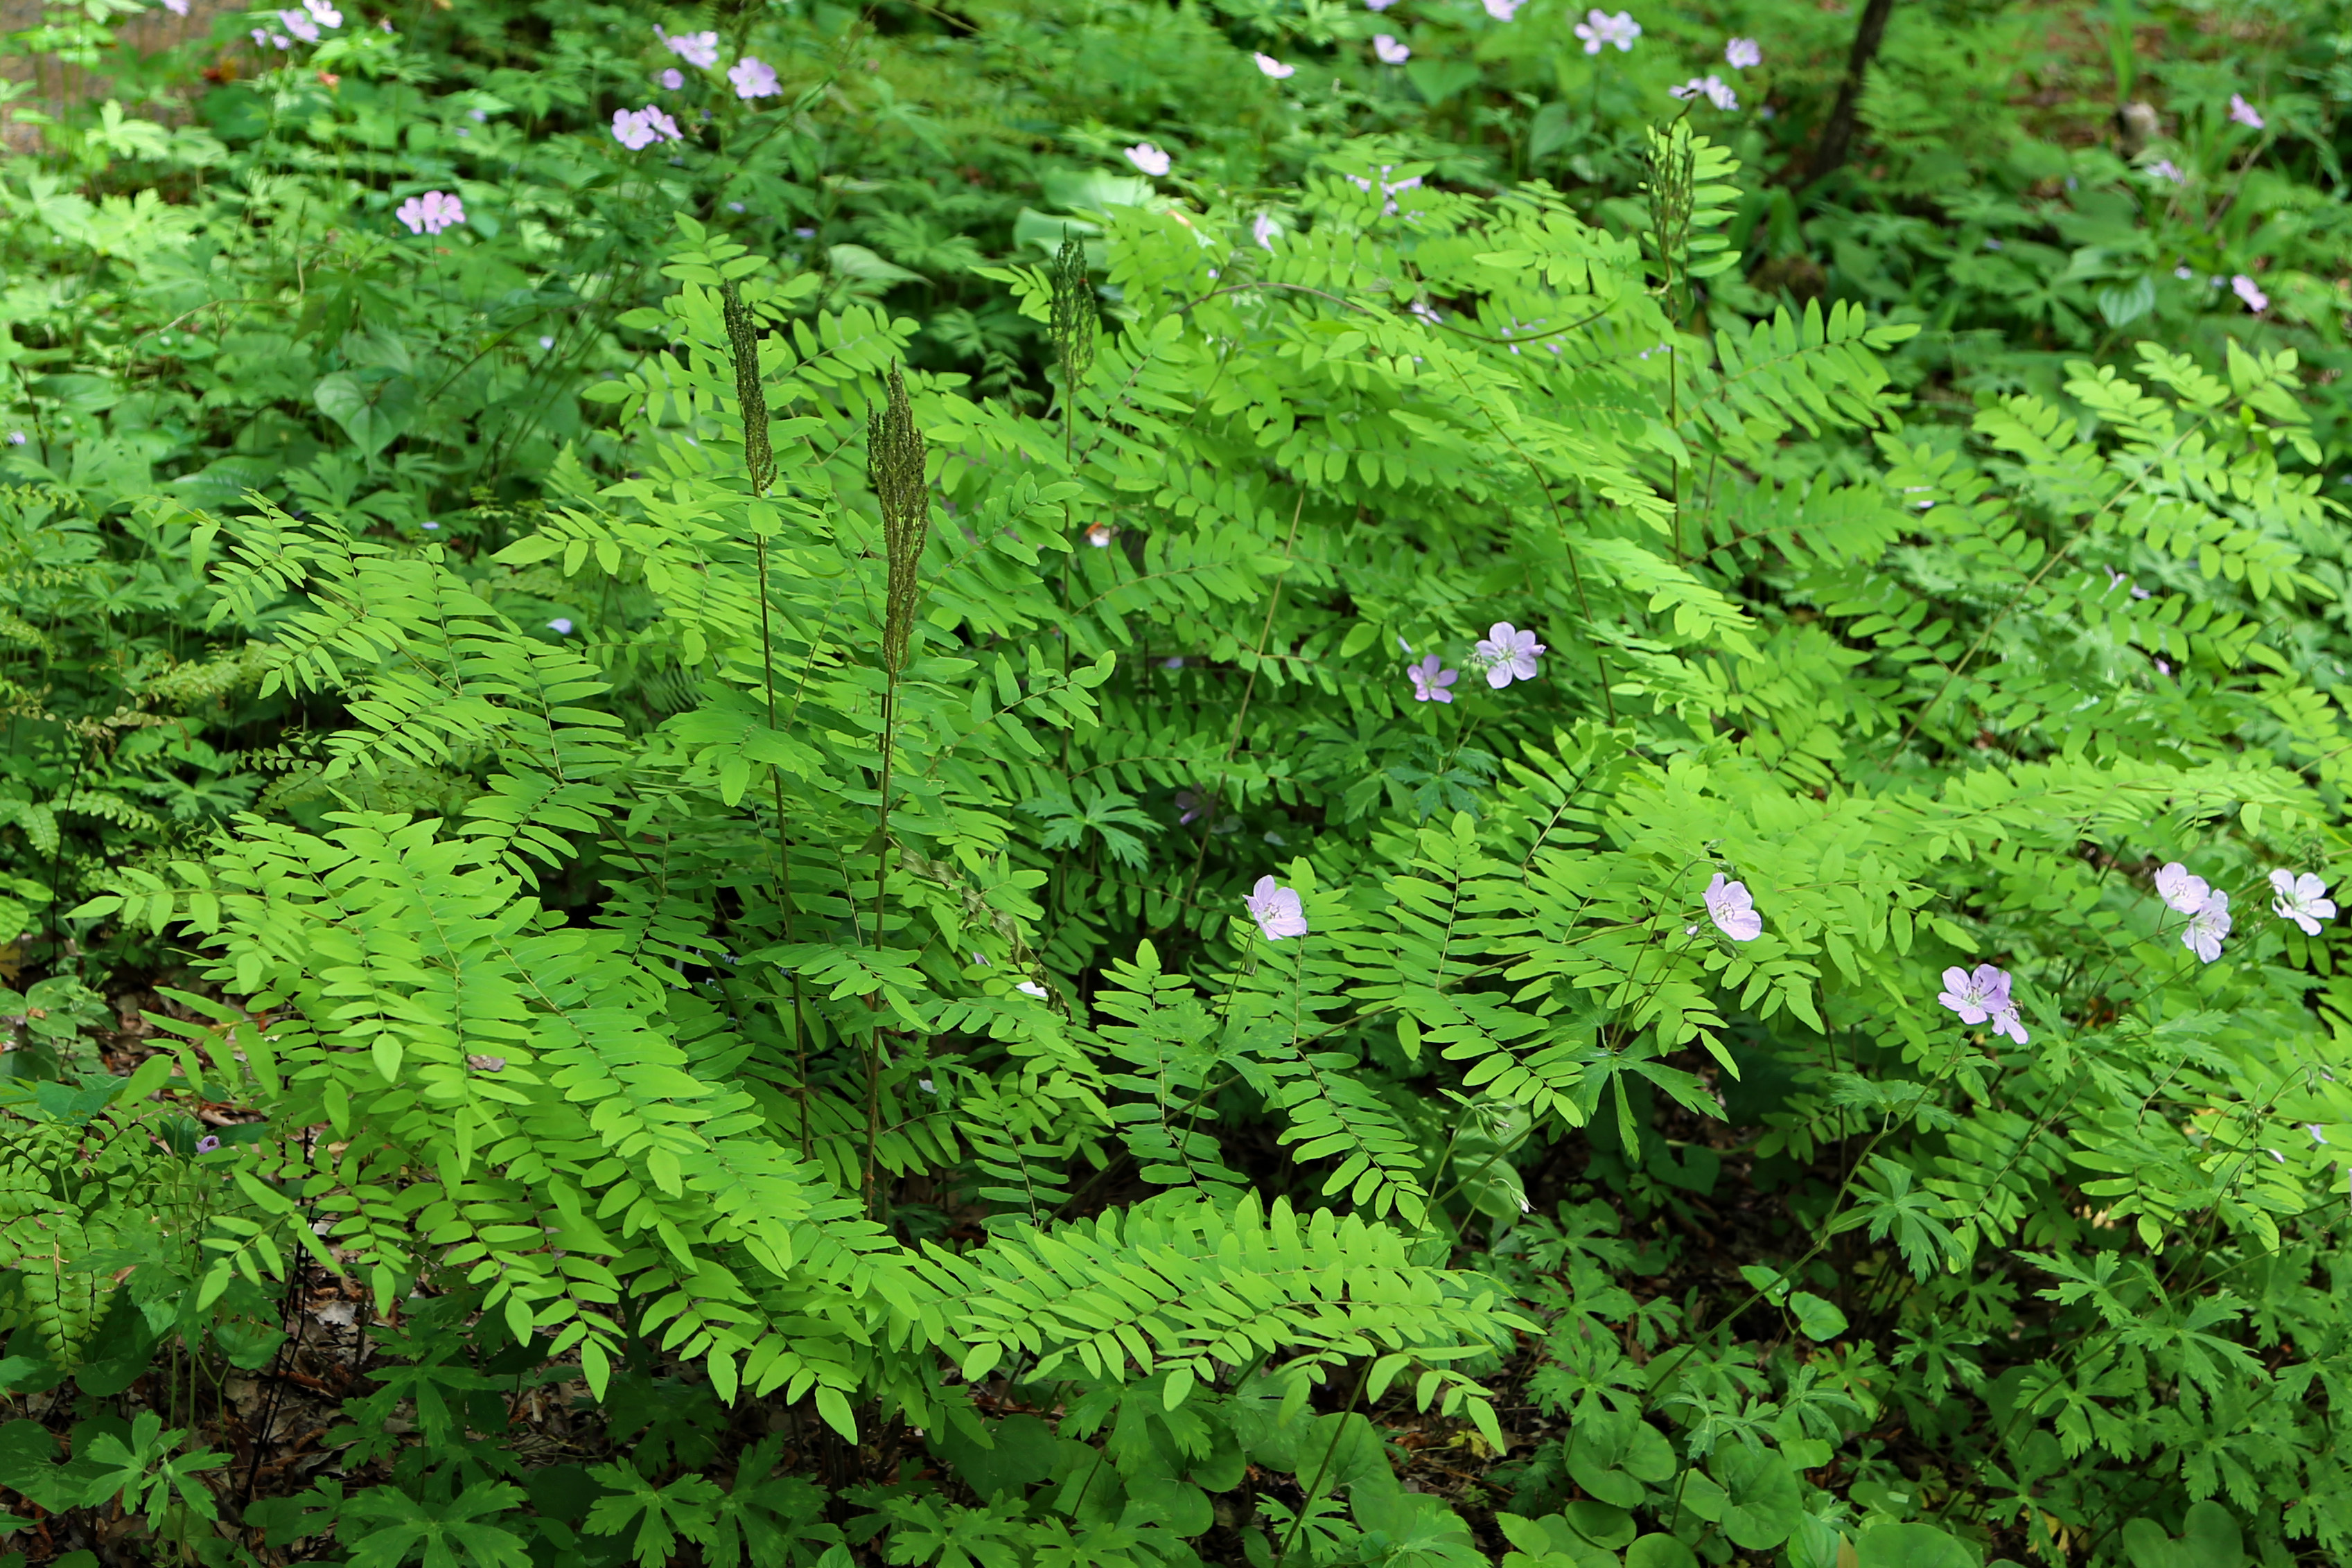 The Scientific Name is Osmunda spectablilis. You will likely hear them called Royal Fern. This picture shows the Royal Fern fronds are dimorphic.  Fertile fronds emerge in mid-spring becoming striking by summer as clusters of sporangia mature. of Osmunda spectablilis